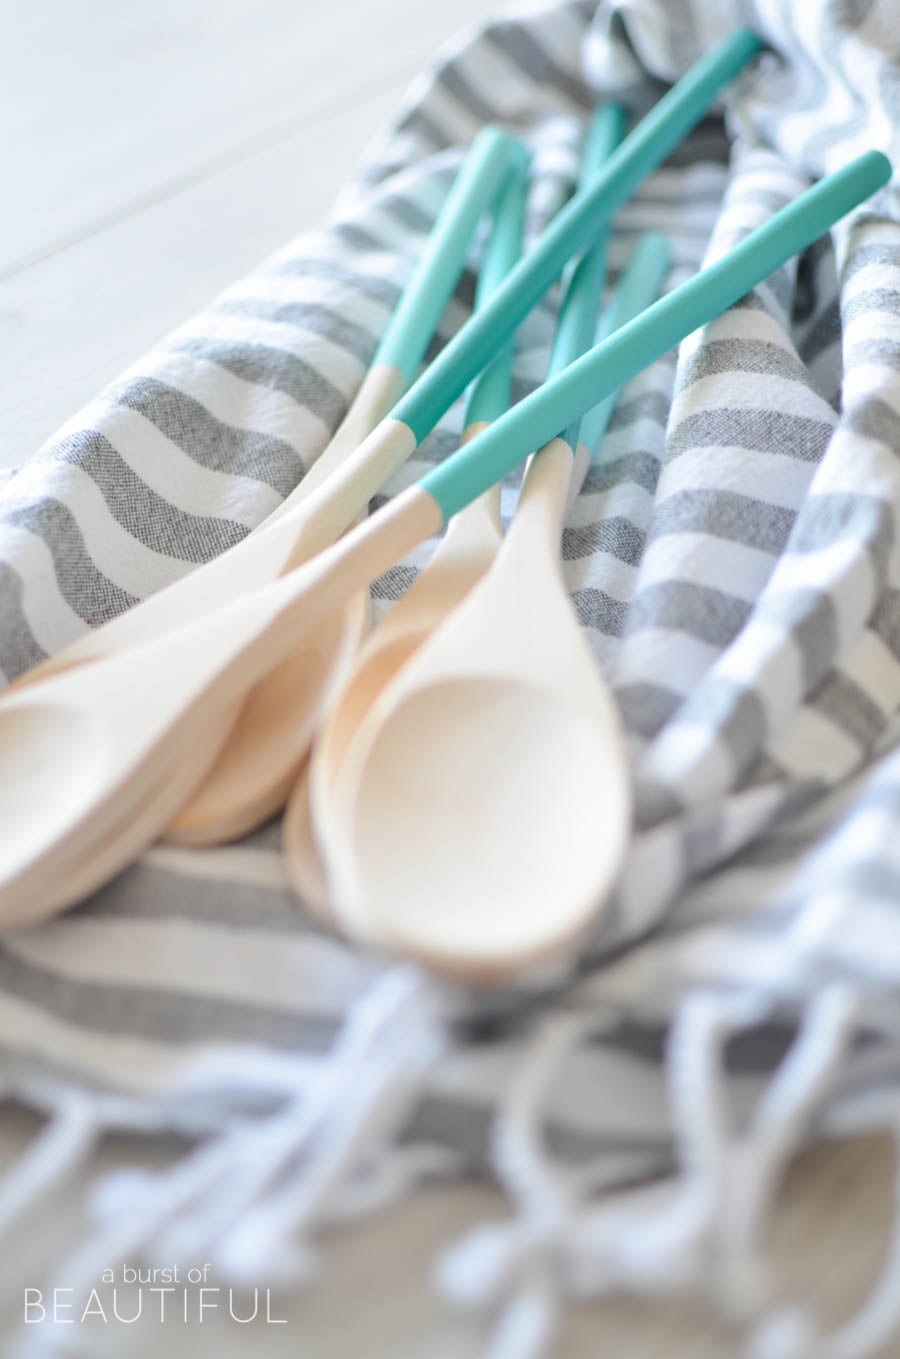 Ombre Painted Wood Spoons are a simple and inexpensive project |A Burst of Beautiful